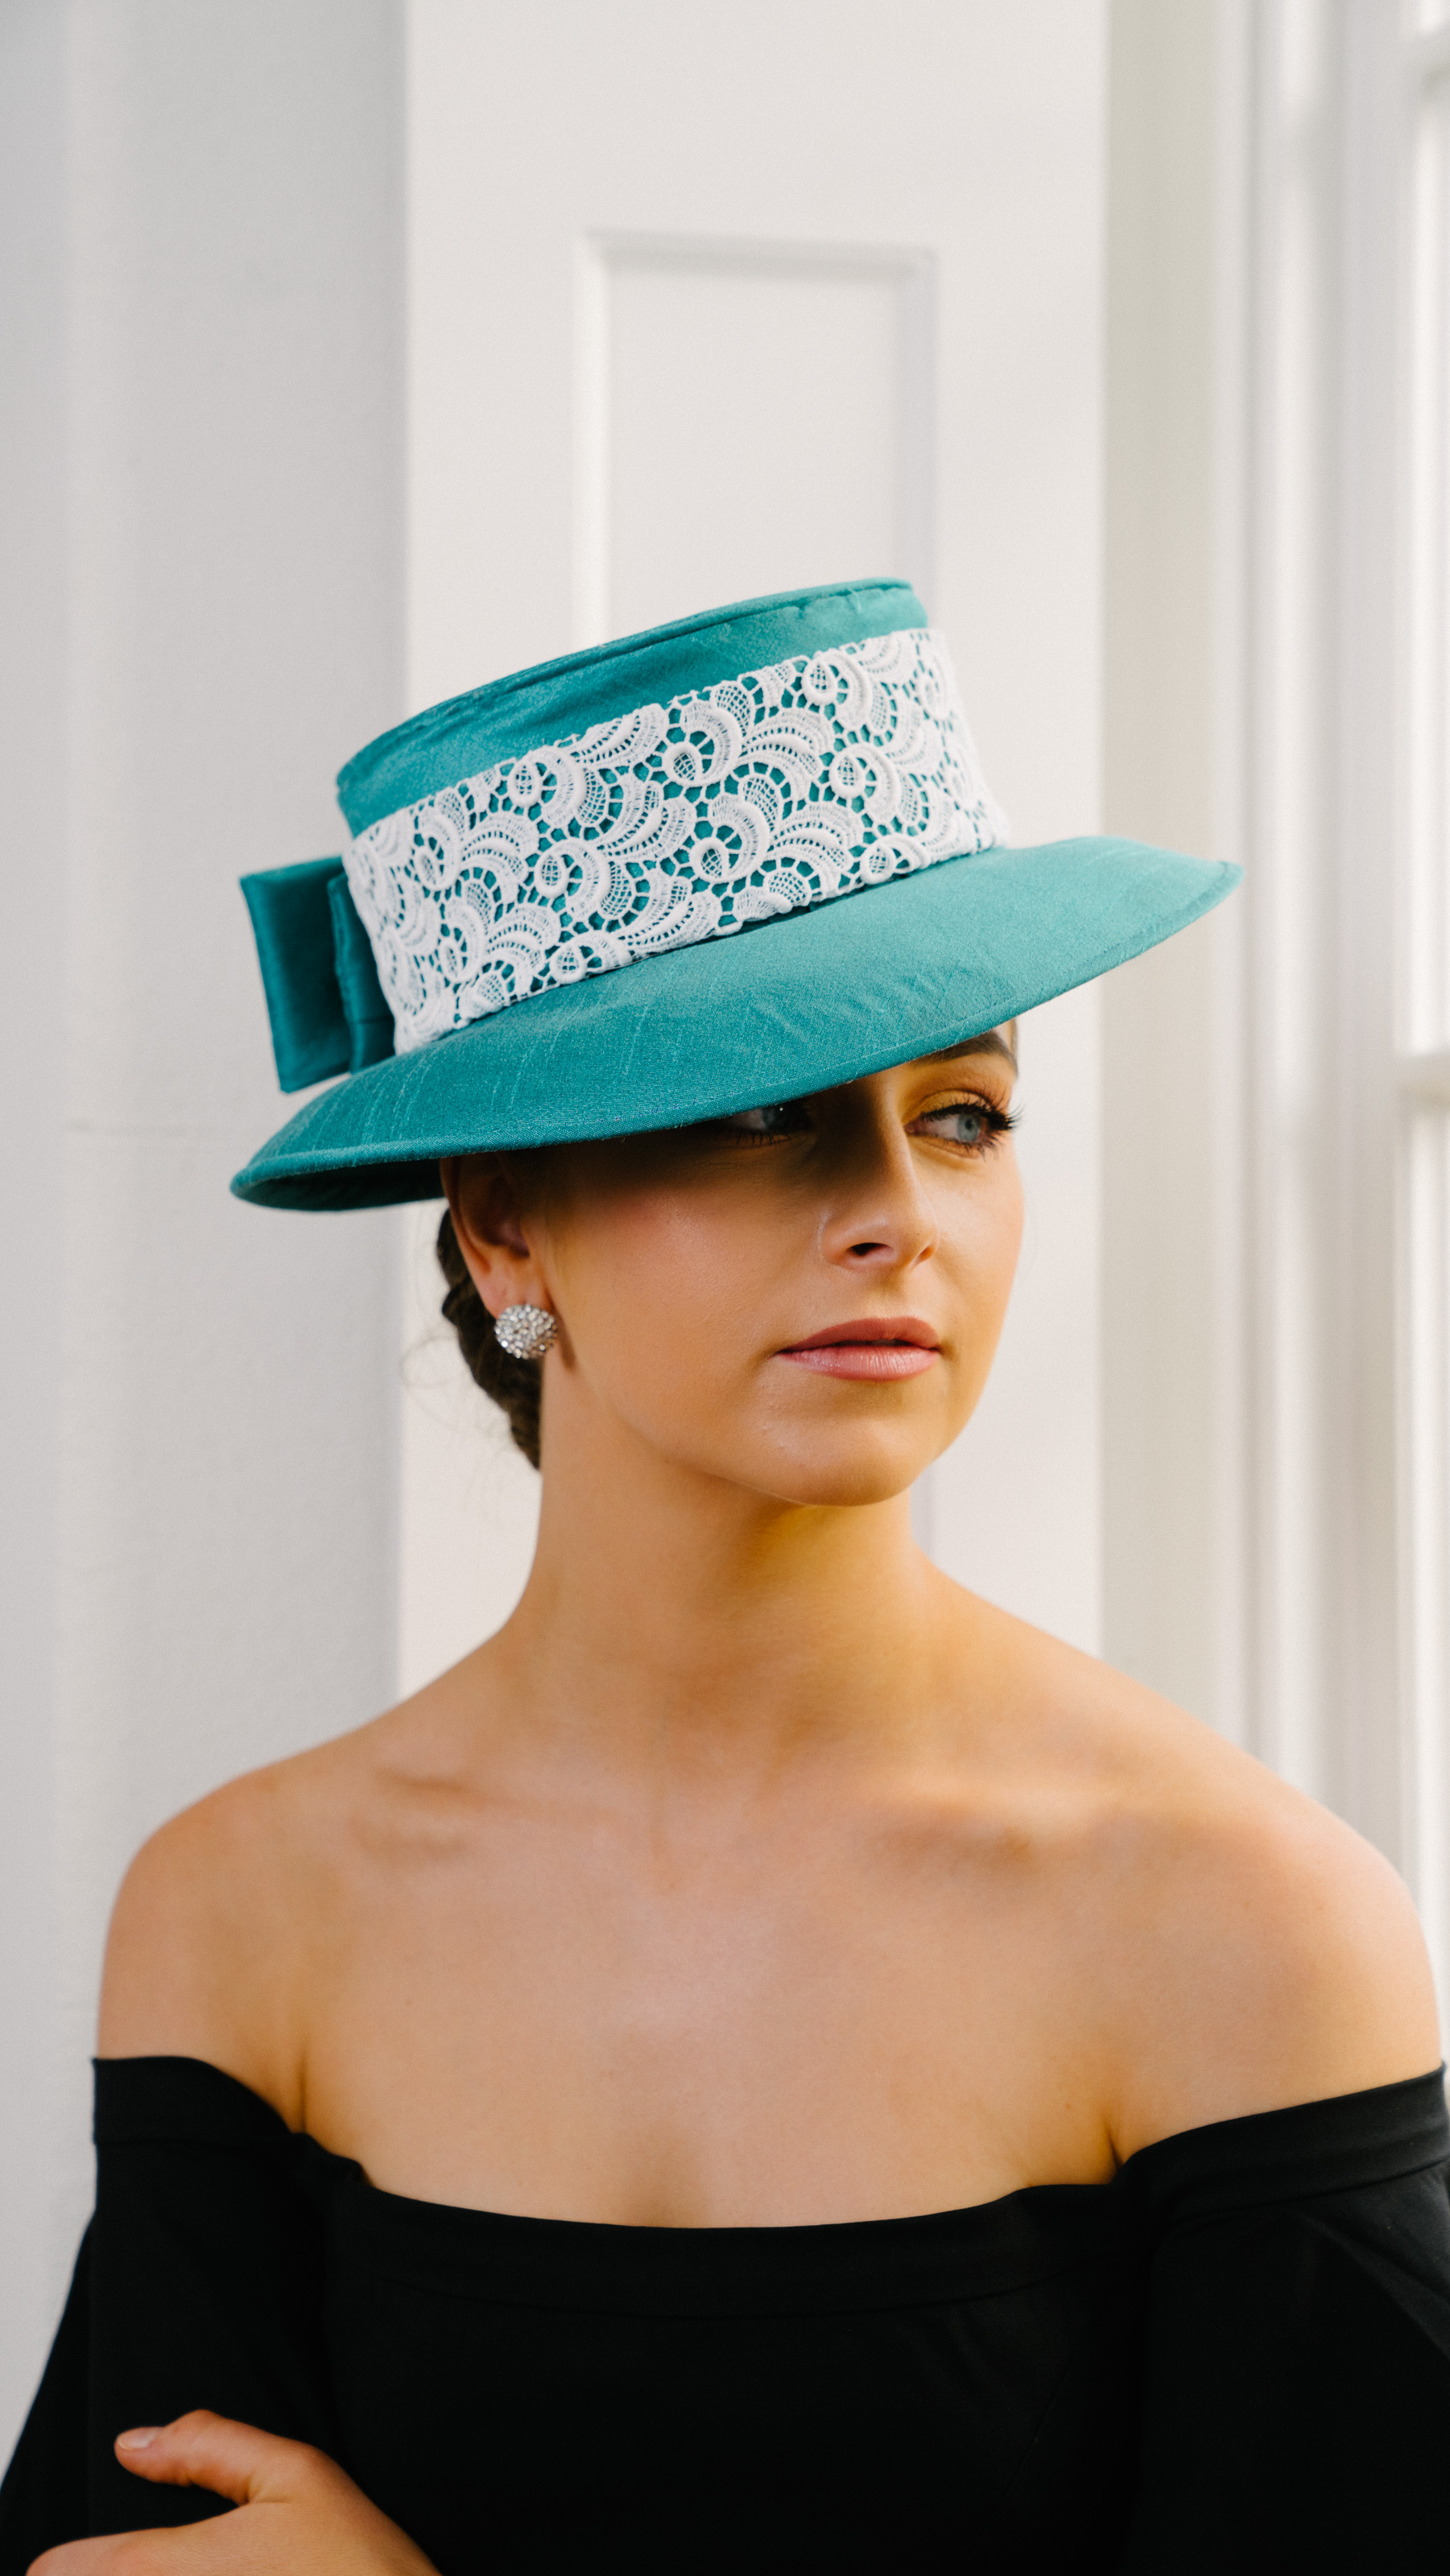 Hat teal Dior brim lace trim